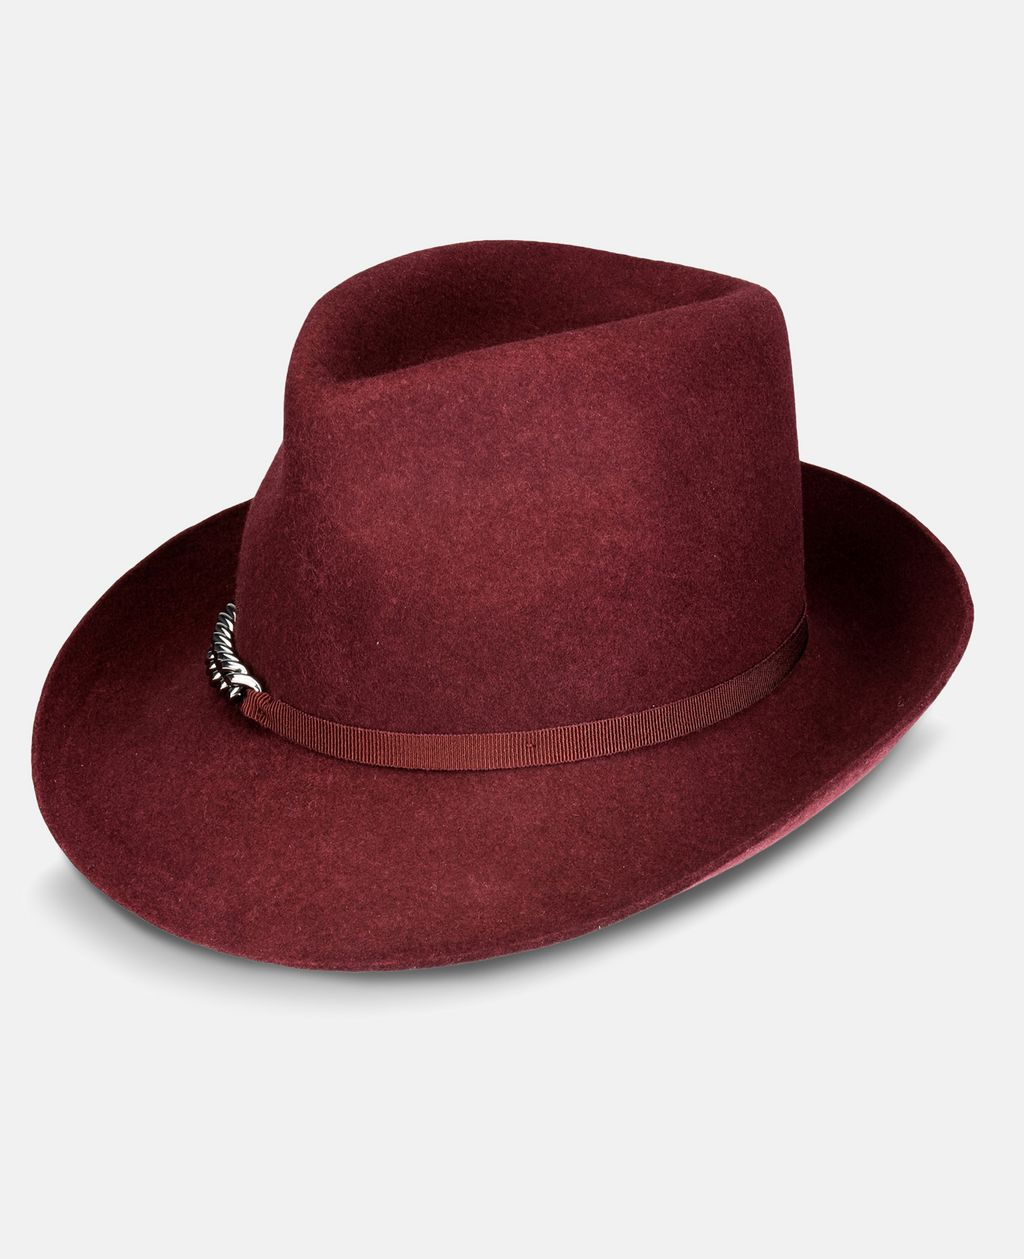 fedora chat Grab the san diego hat co seasons black suede fedora hat to add a stylish touch to any ootd soft vegan suede fedora hat with vegan leather band.